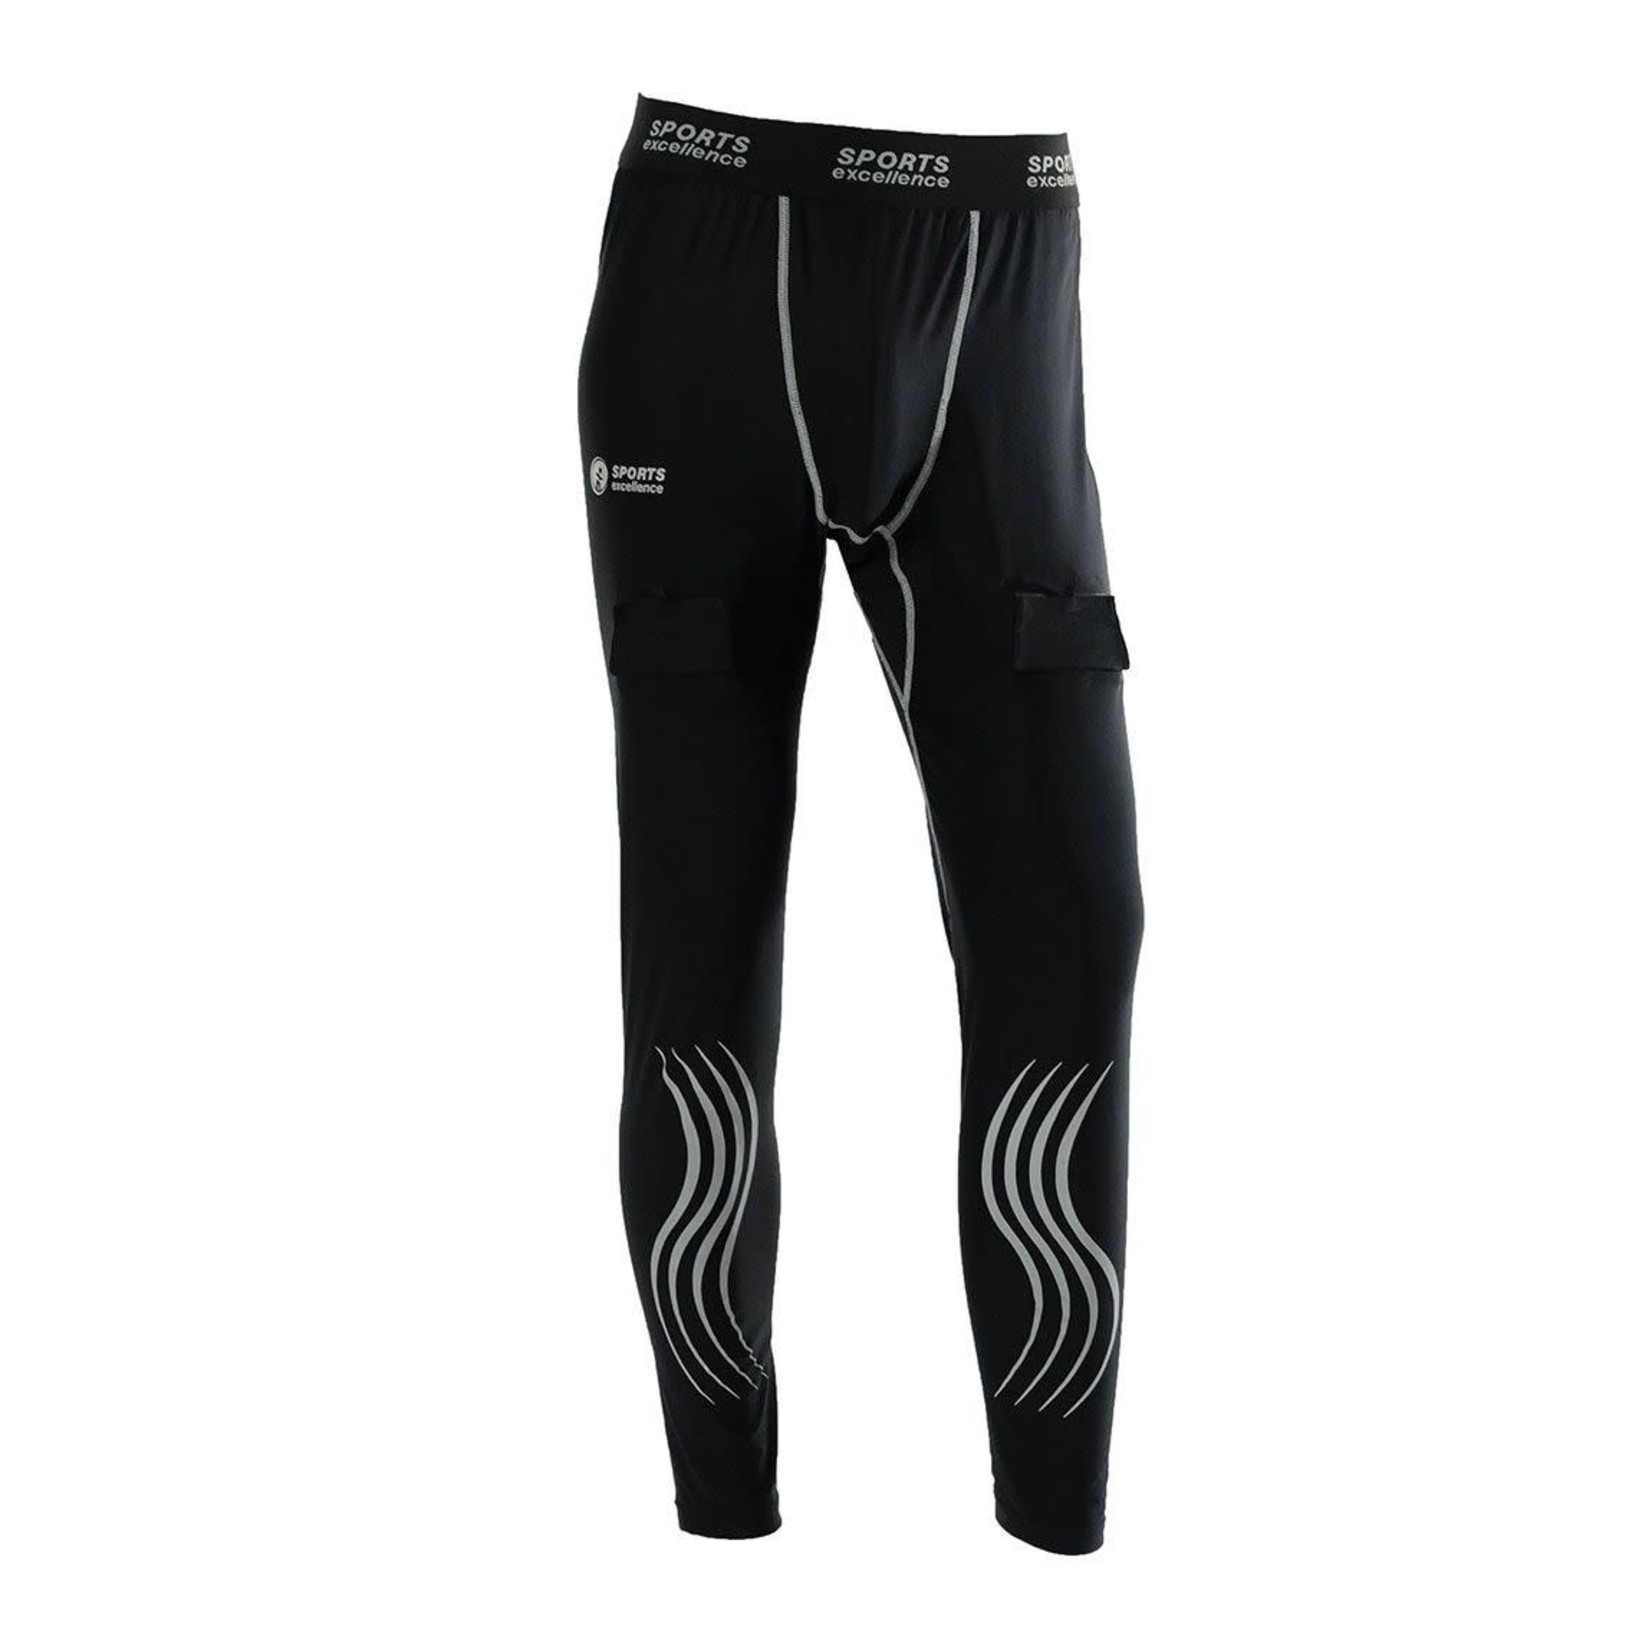 Sports Excellence SEC Compression Jock Pants, TI50 Gel, Youth